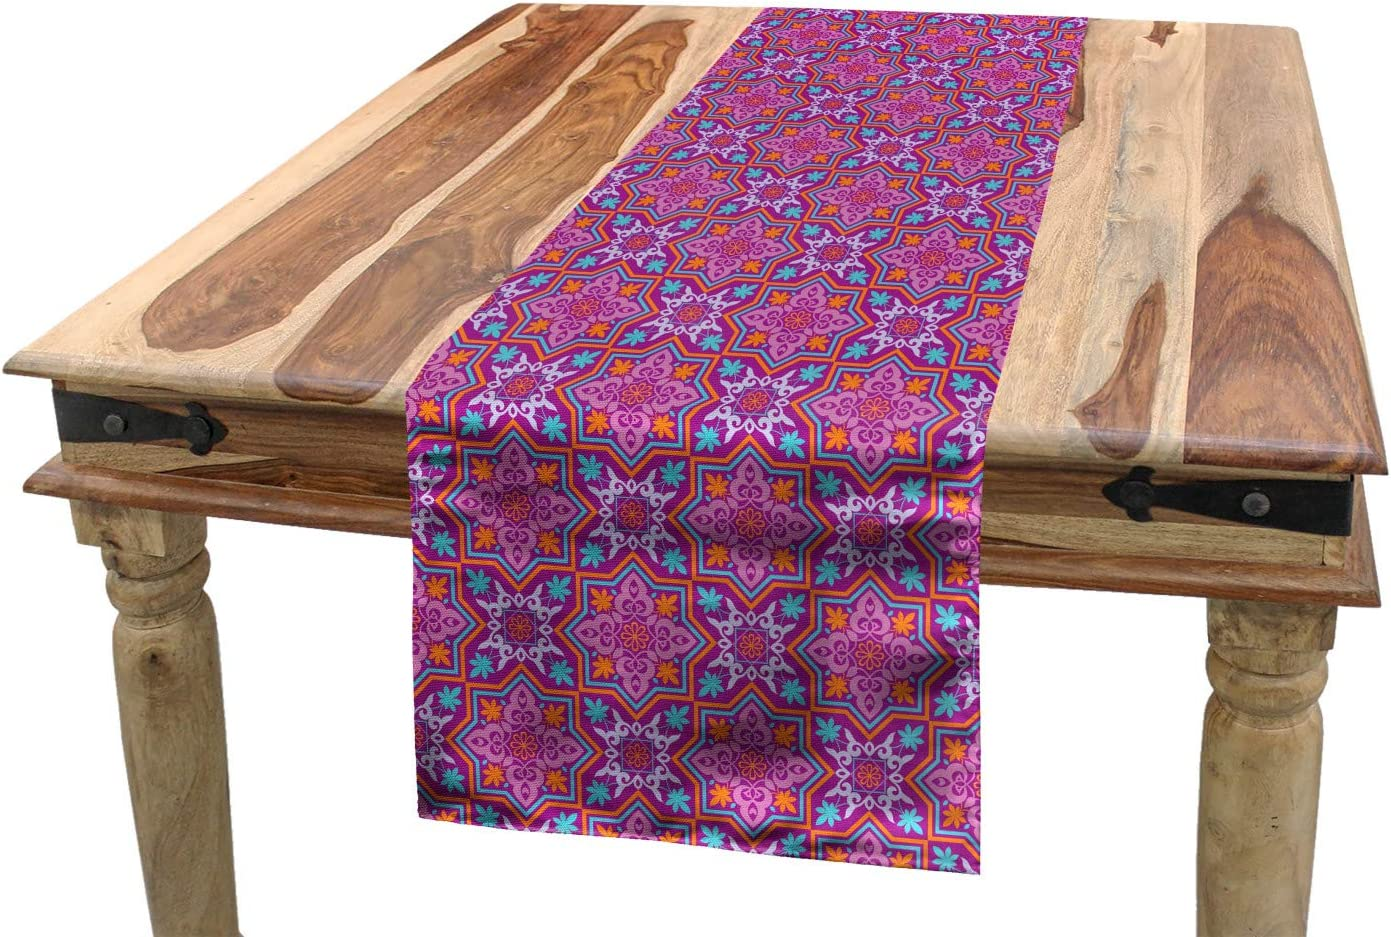 """Lunarable Middle Eastern Table Runner, Nature Blossom Motif with Geometric Shapes Swirled Composition Star Shape, Dining Room Kitchen Rectangular Runner, 16"""" X 72"""", Dark Magenta"""